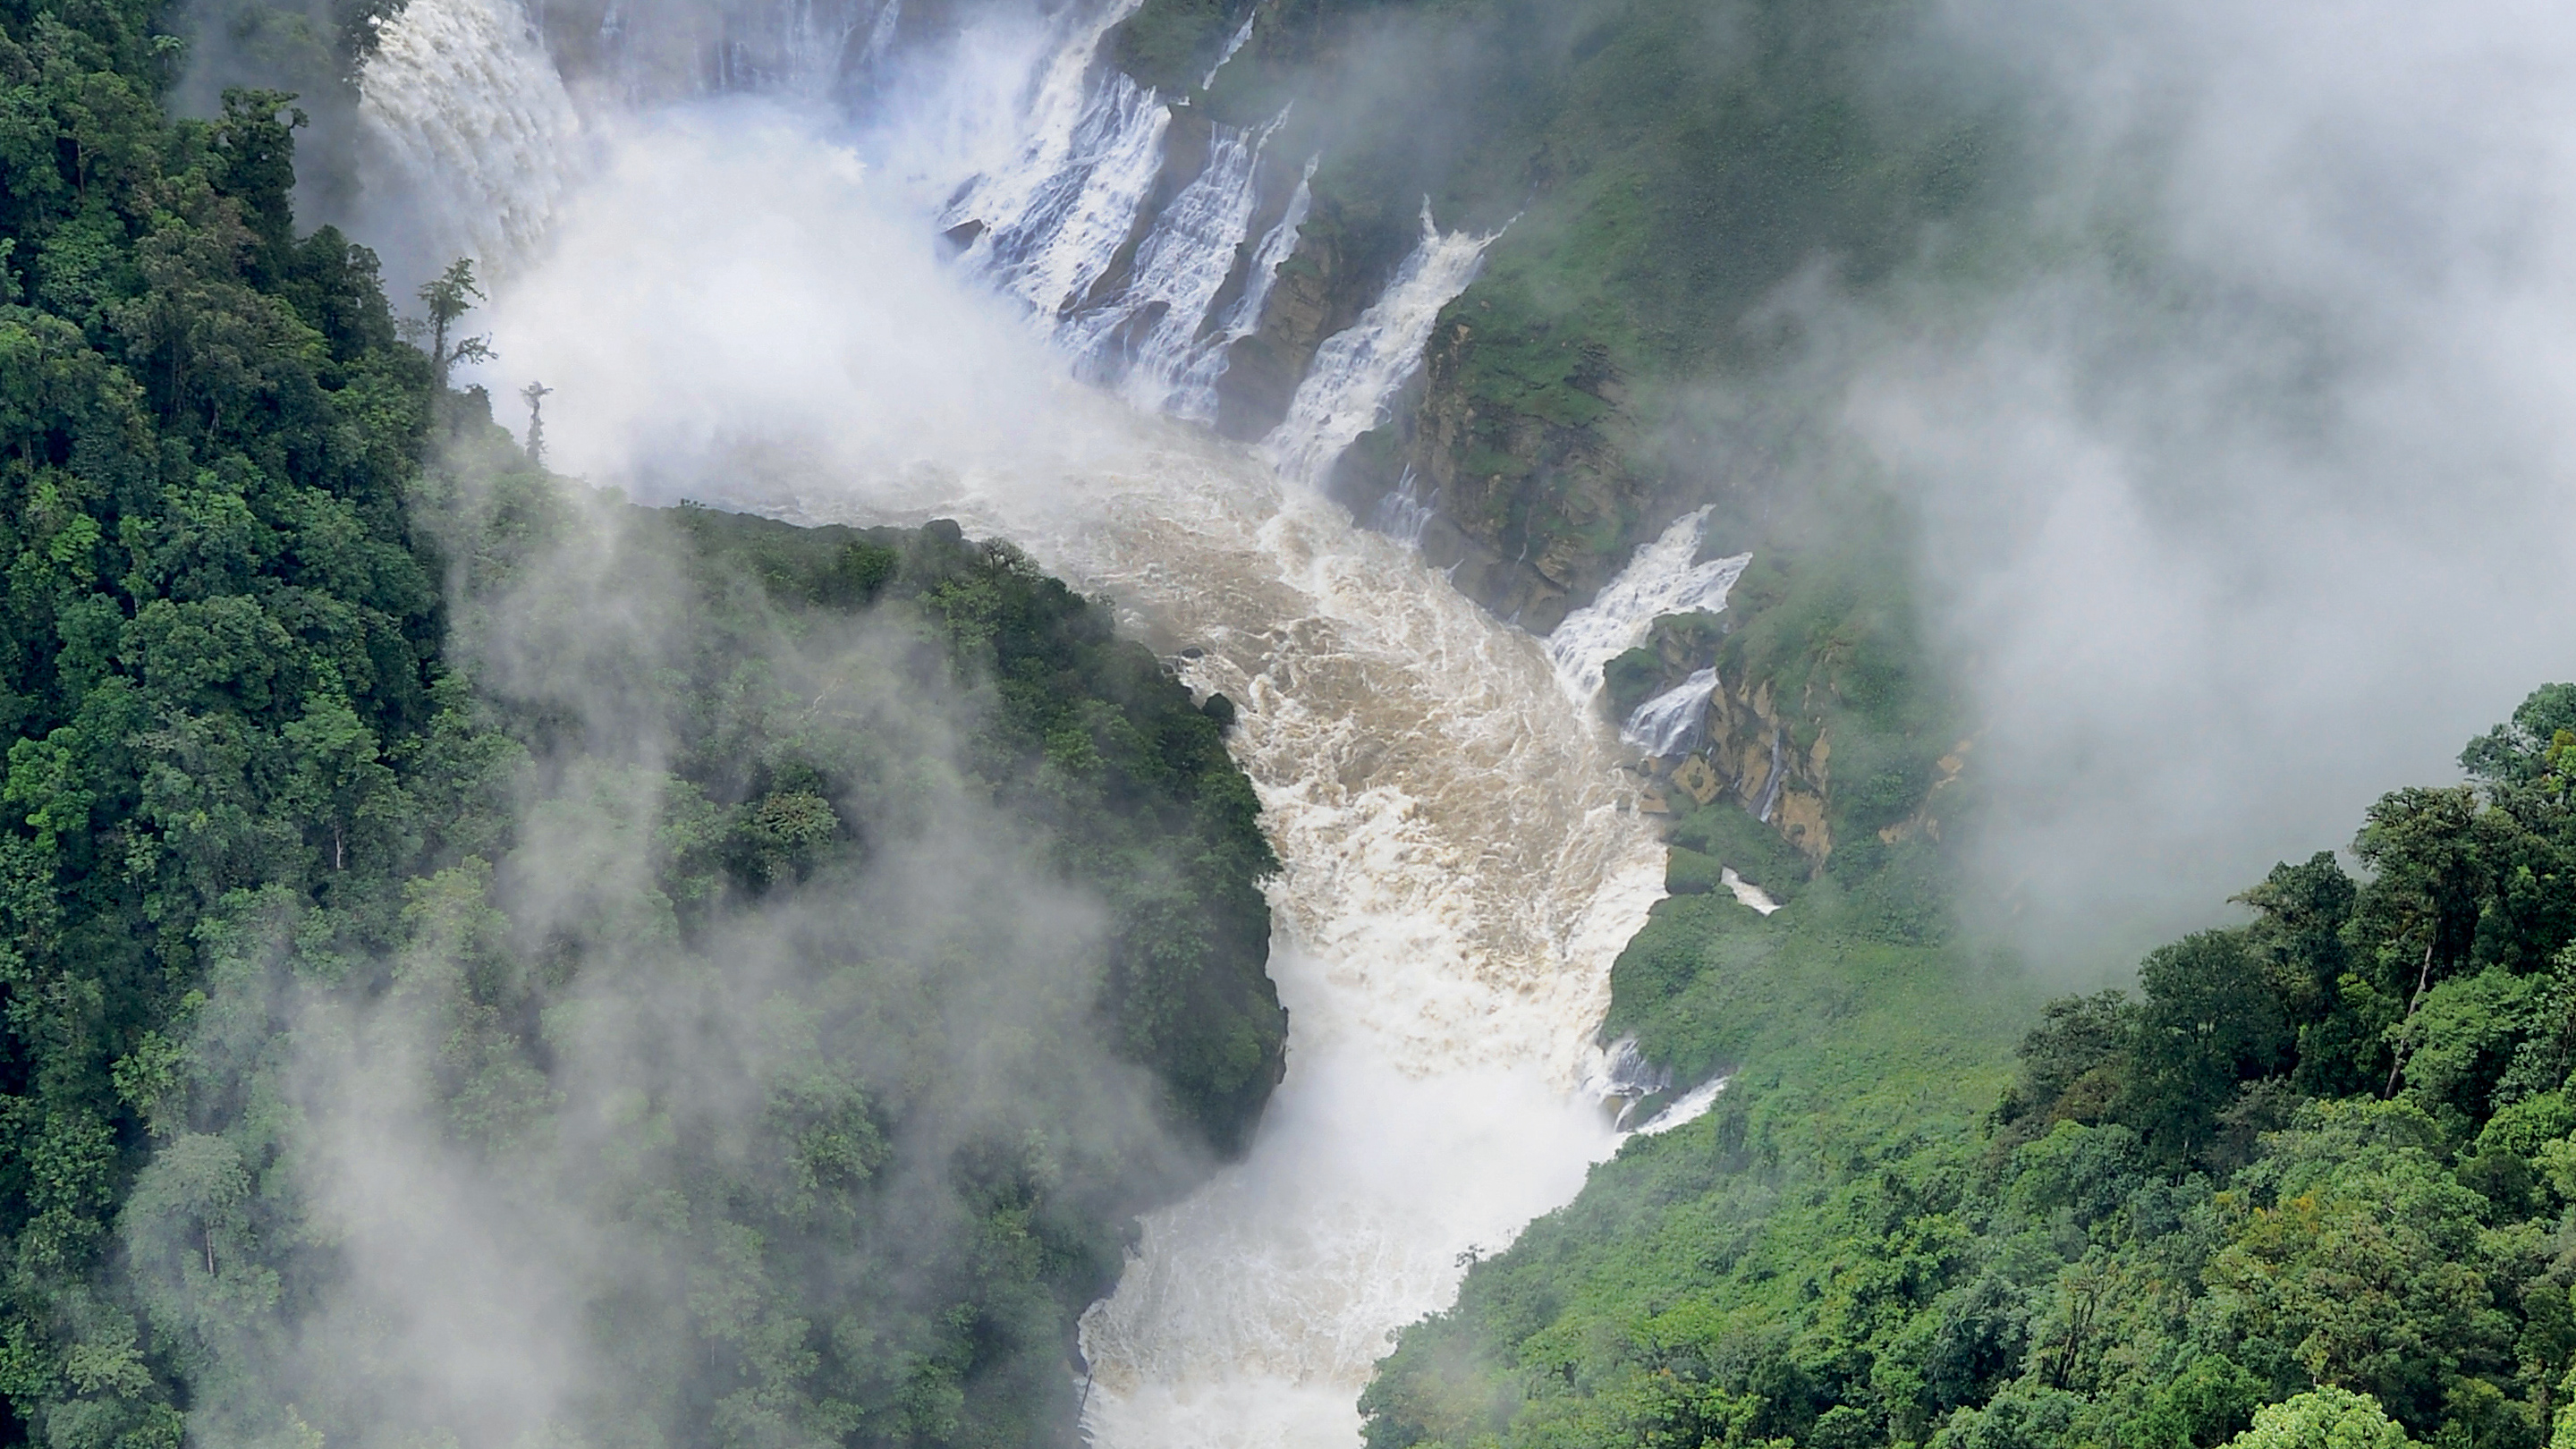 Waterfall in Papa New Guinea